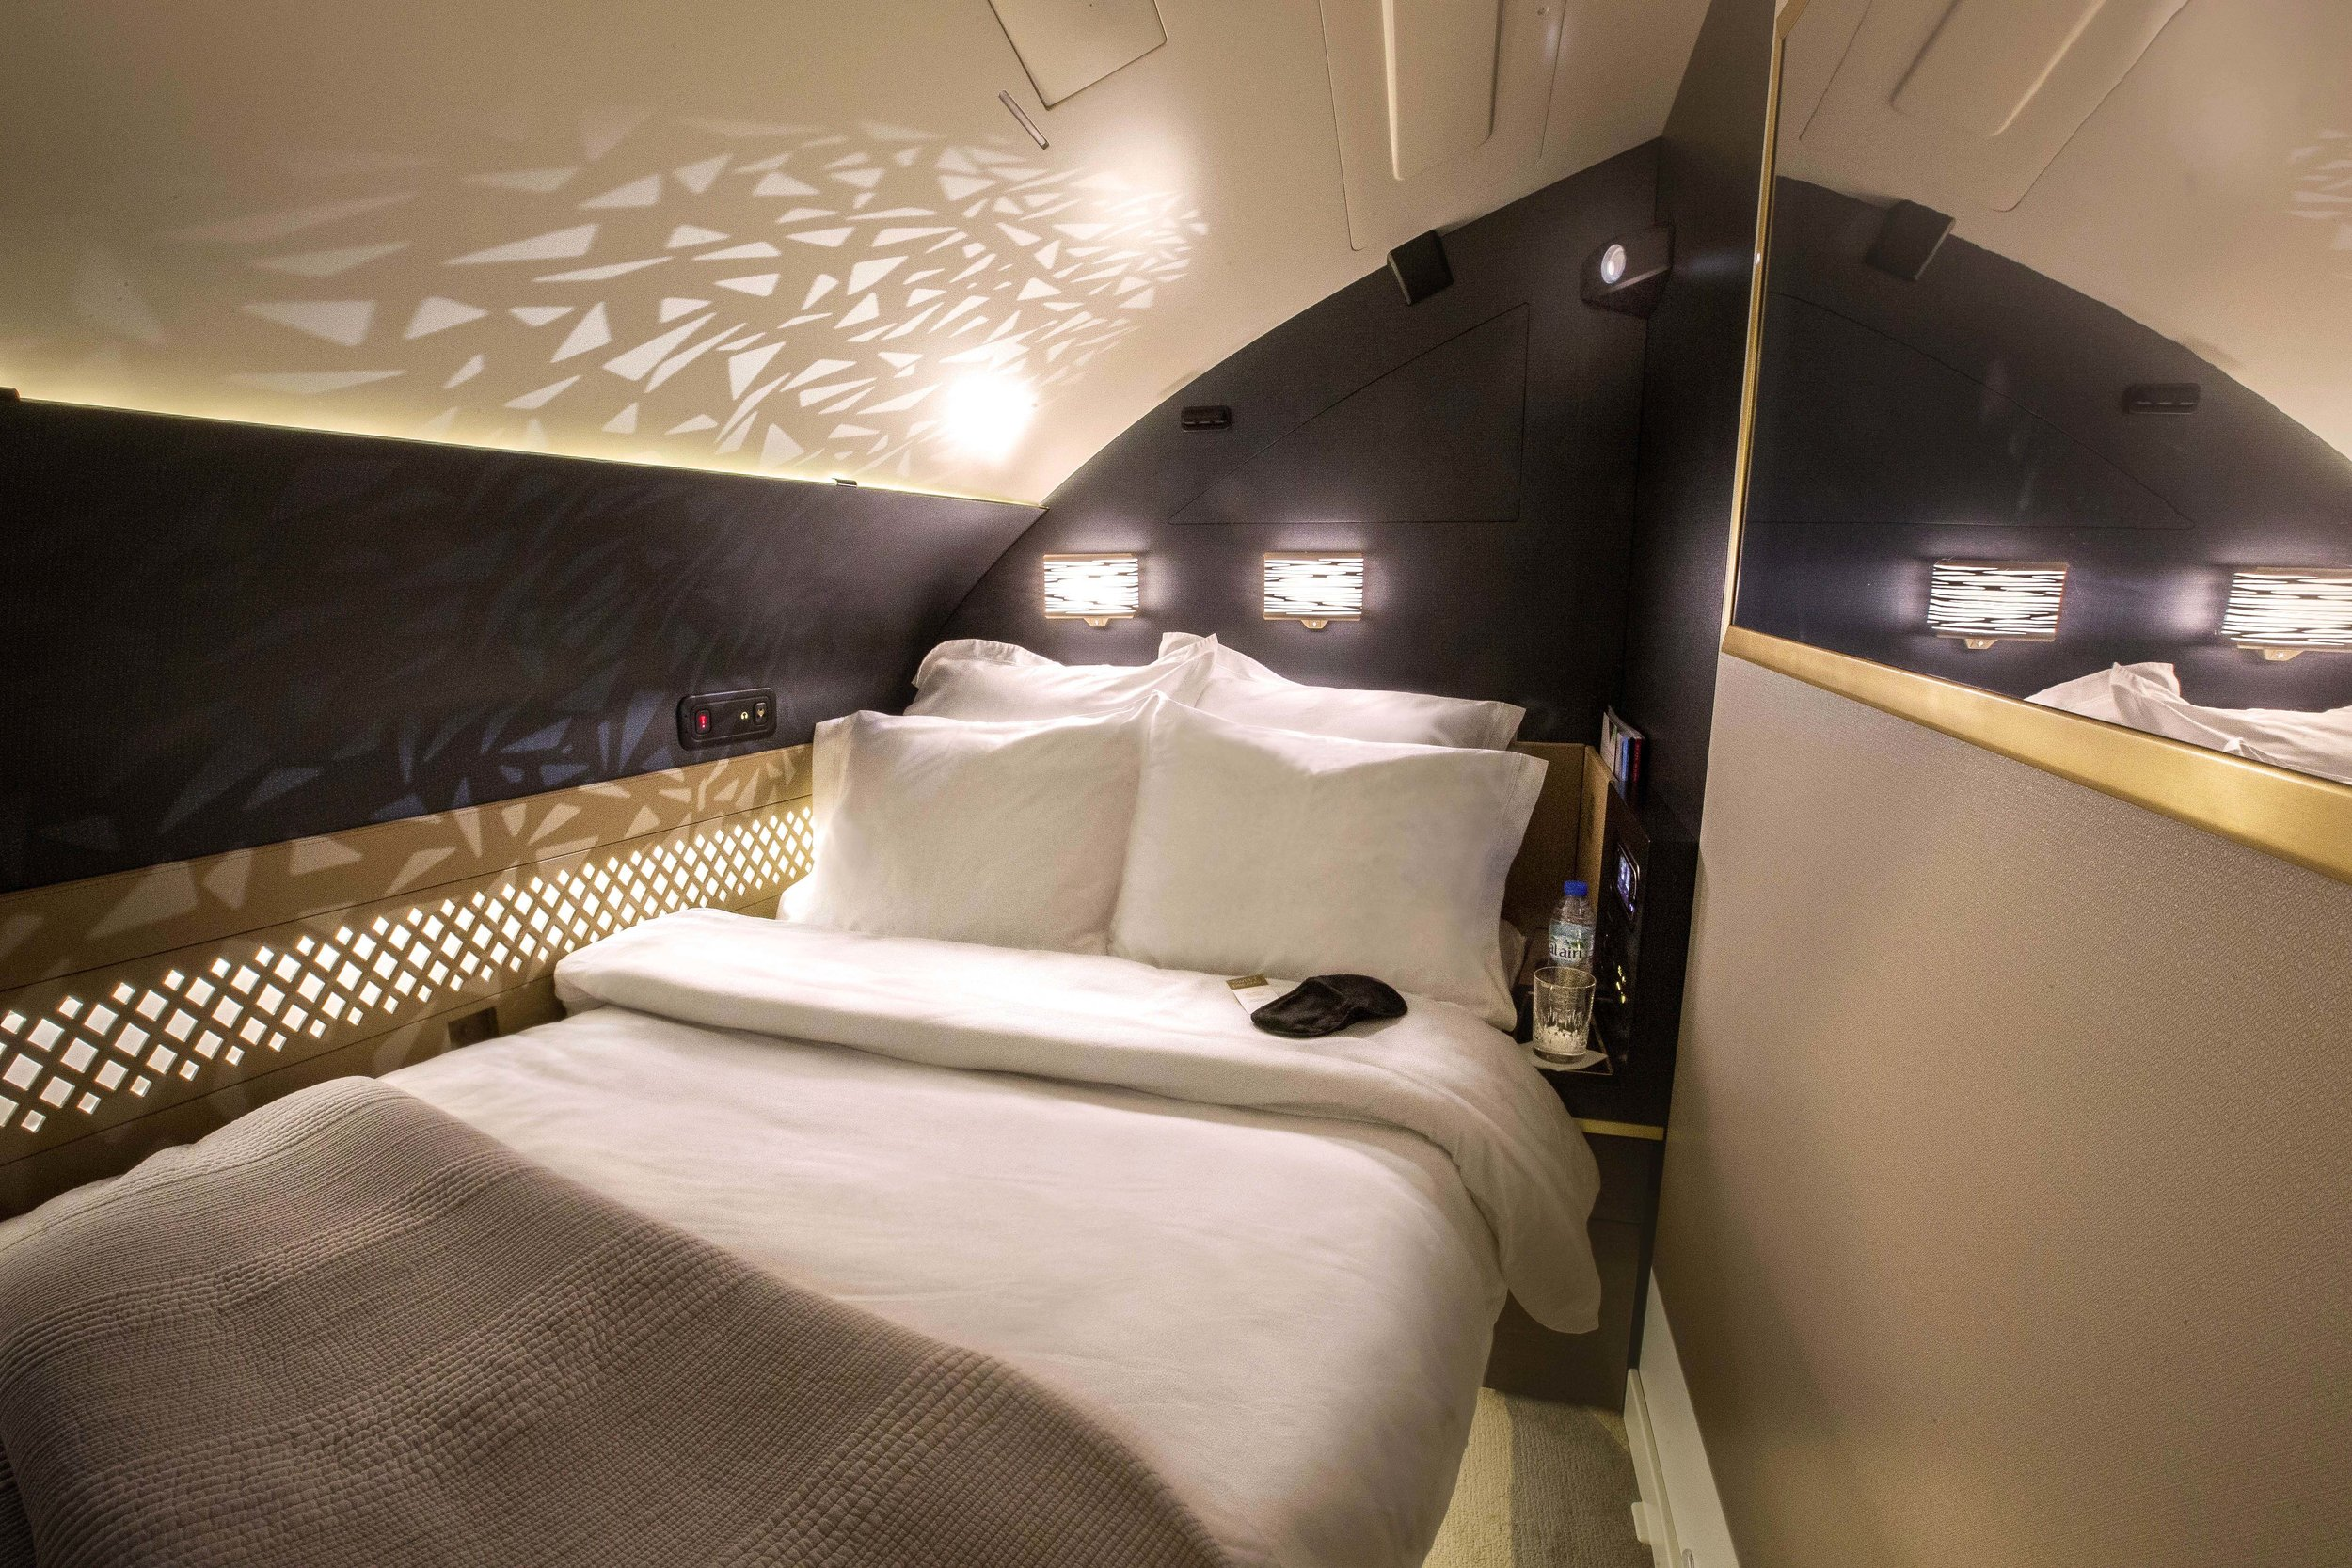 Etihad The Residence bed in the sky